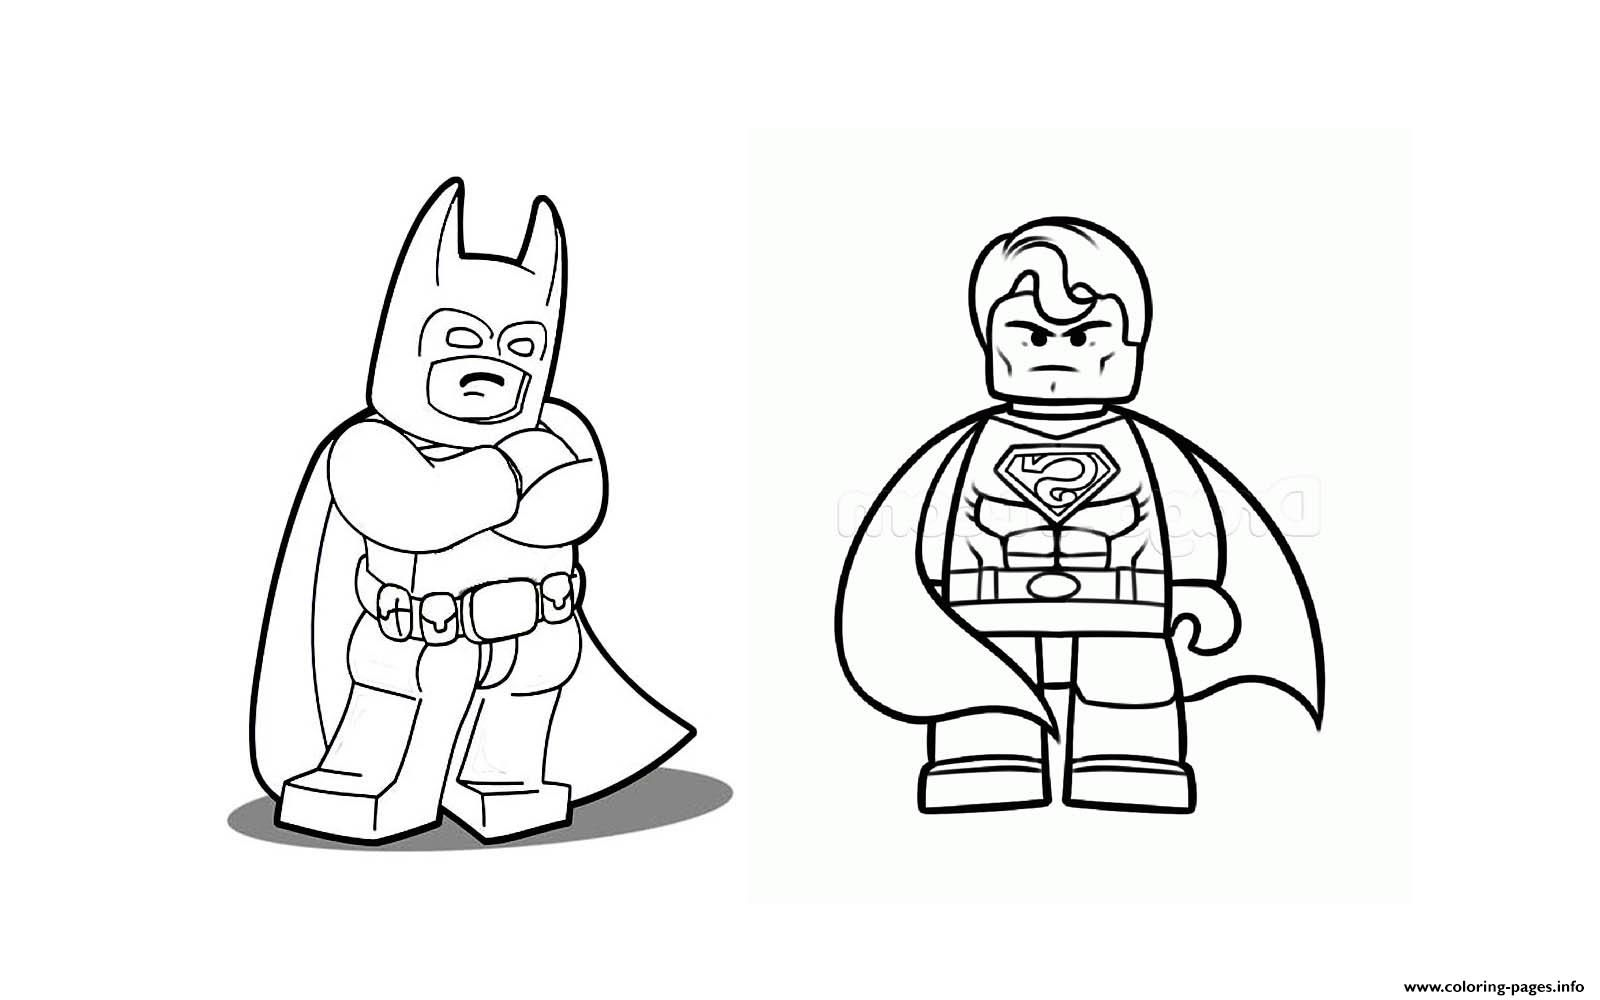 Print Batman Vs Superman Lego 2016 Coloring Pages Lego Coloring Pages Superman Coloring Pages Lego Coloring